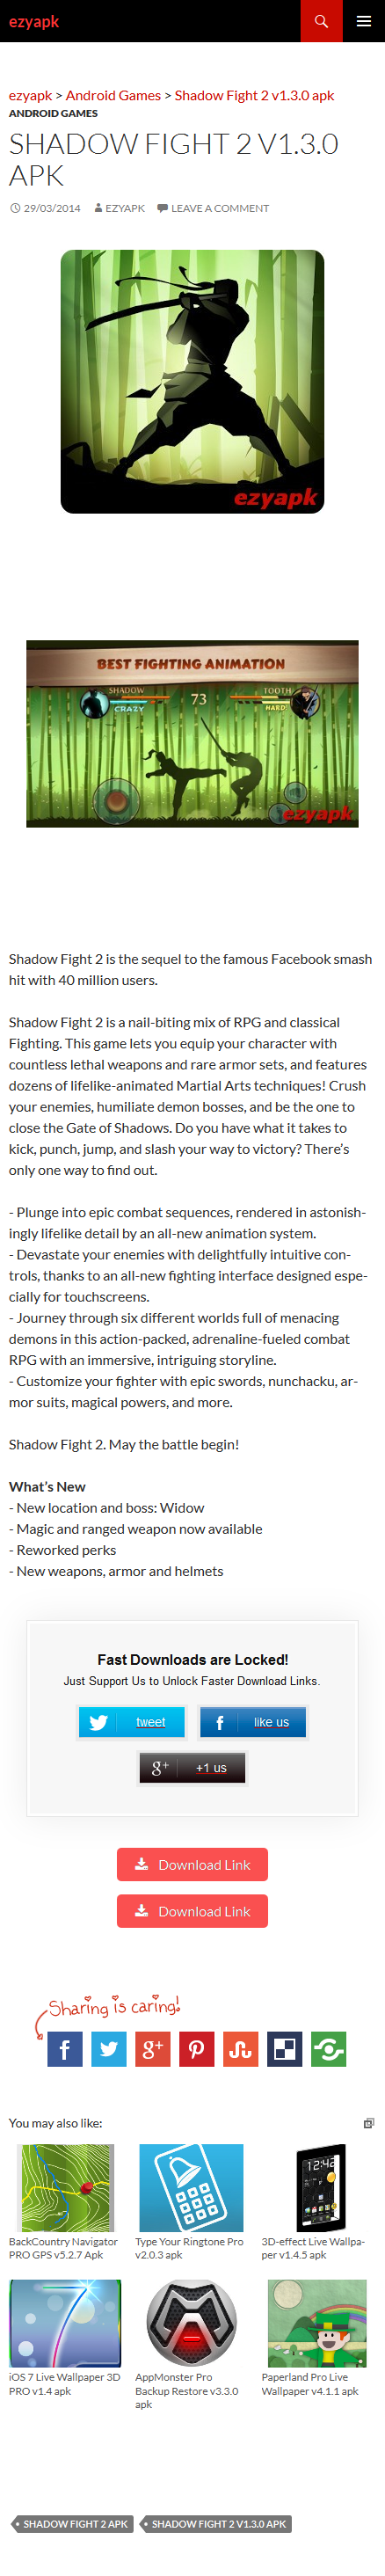 Android Games Shadow Fight 2 v1.3.0 apk - ezyapk Shadow Fight 2 is the sequel to the famous Facebook smash hit with 40 million users. Shadow Fight 2 is a nail-biting mix of RPG and classical Fighting. http://www.ezyapk.com/android-games/shadow-fight-2-v1-3-0-apk/